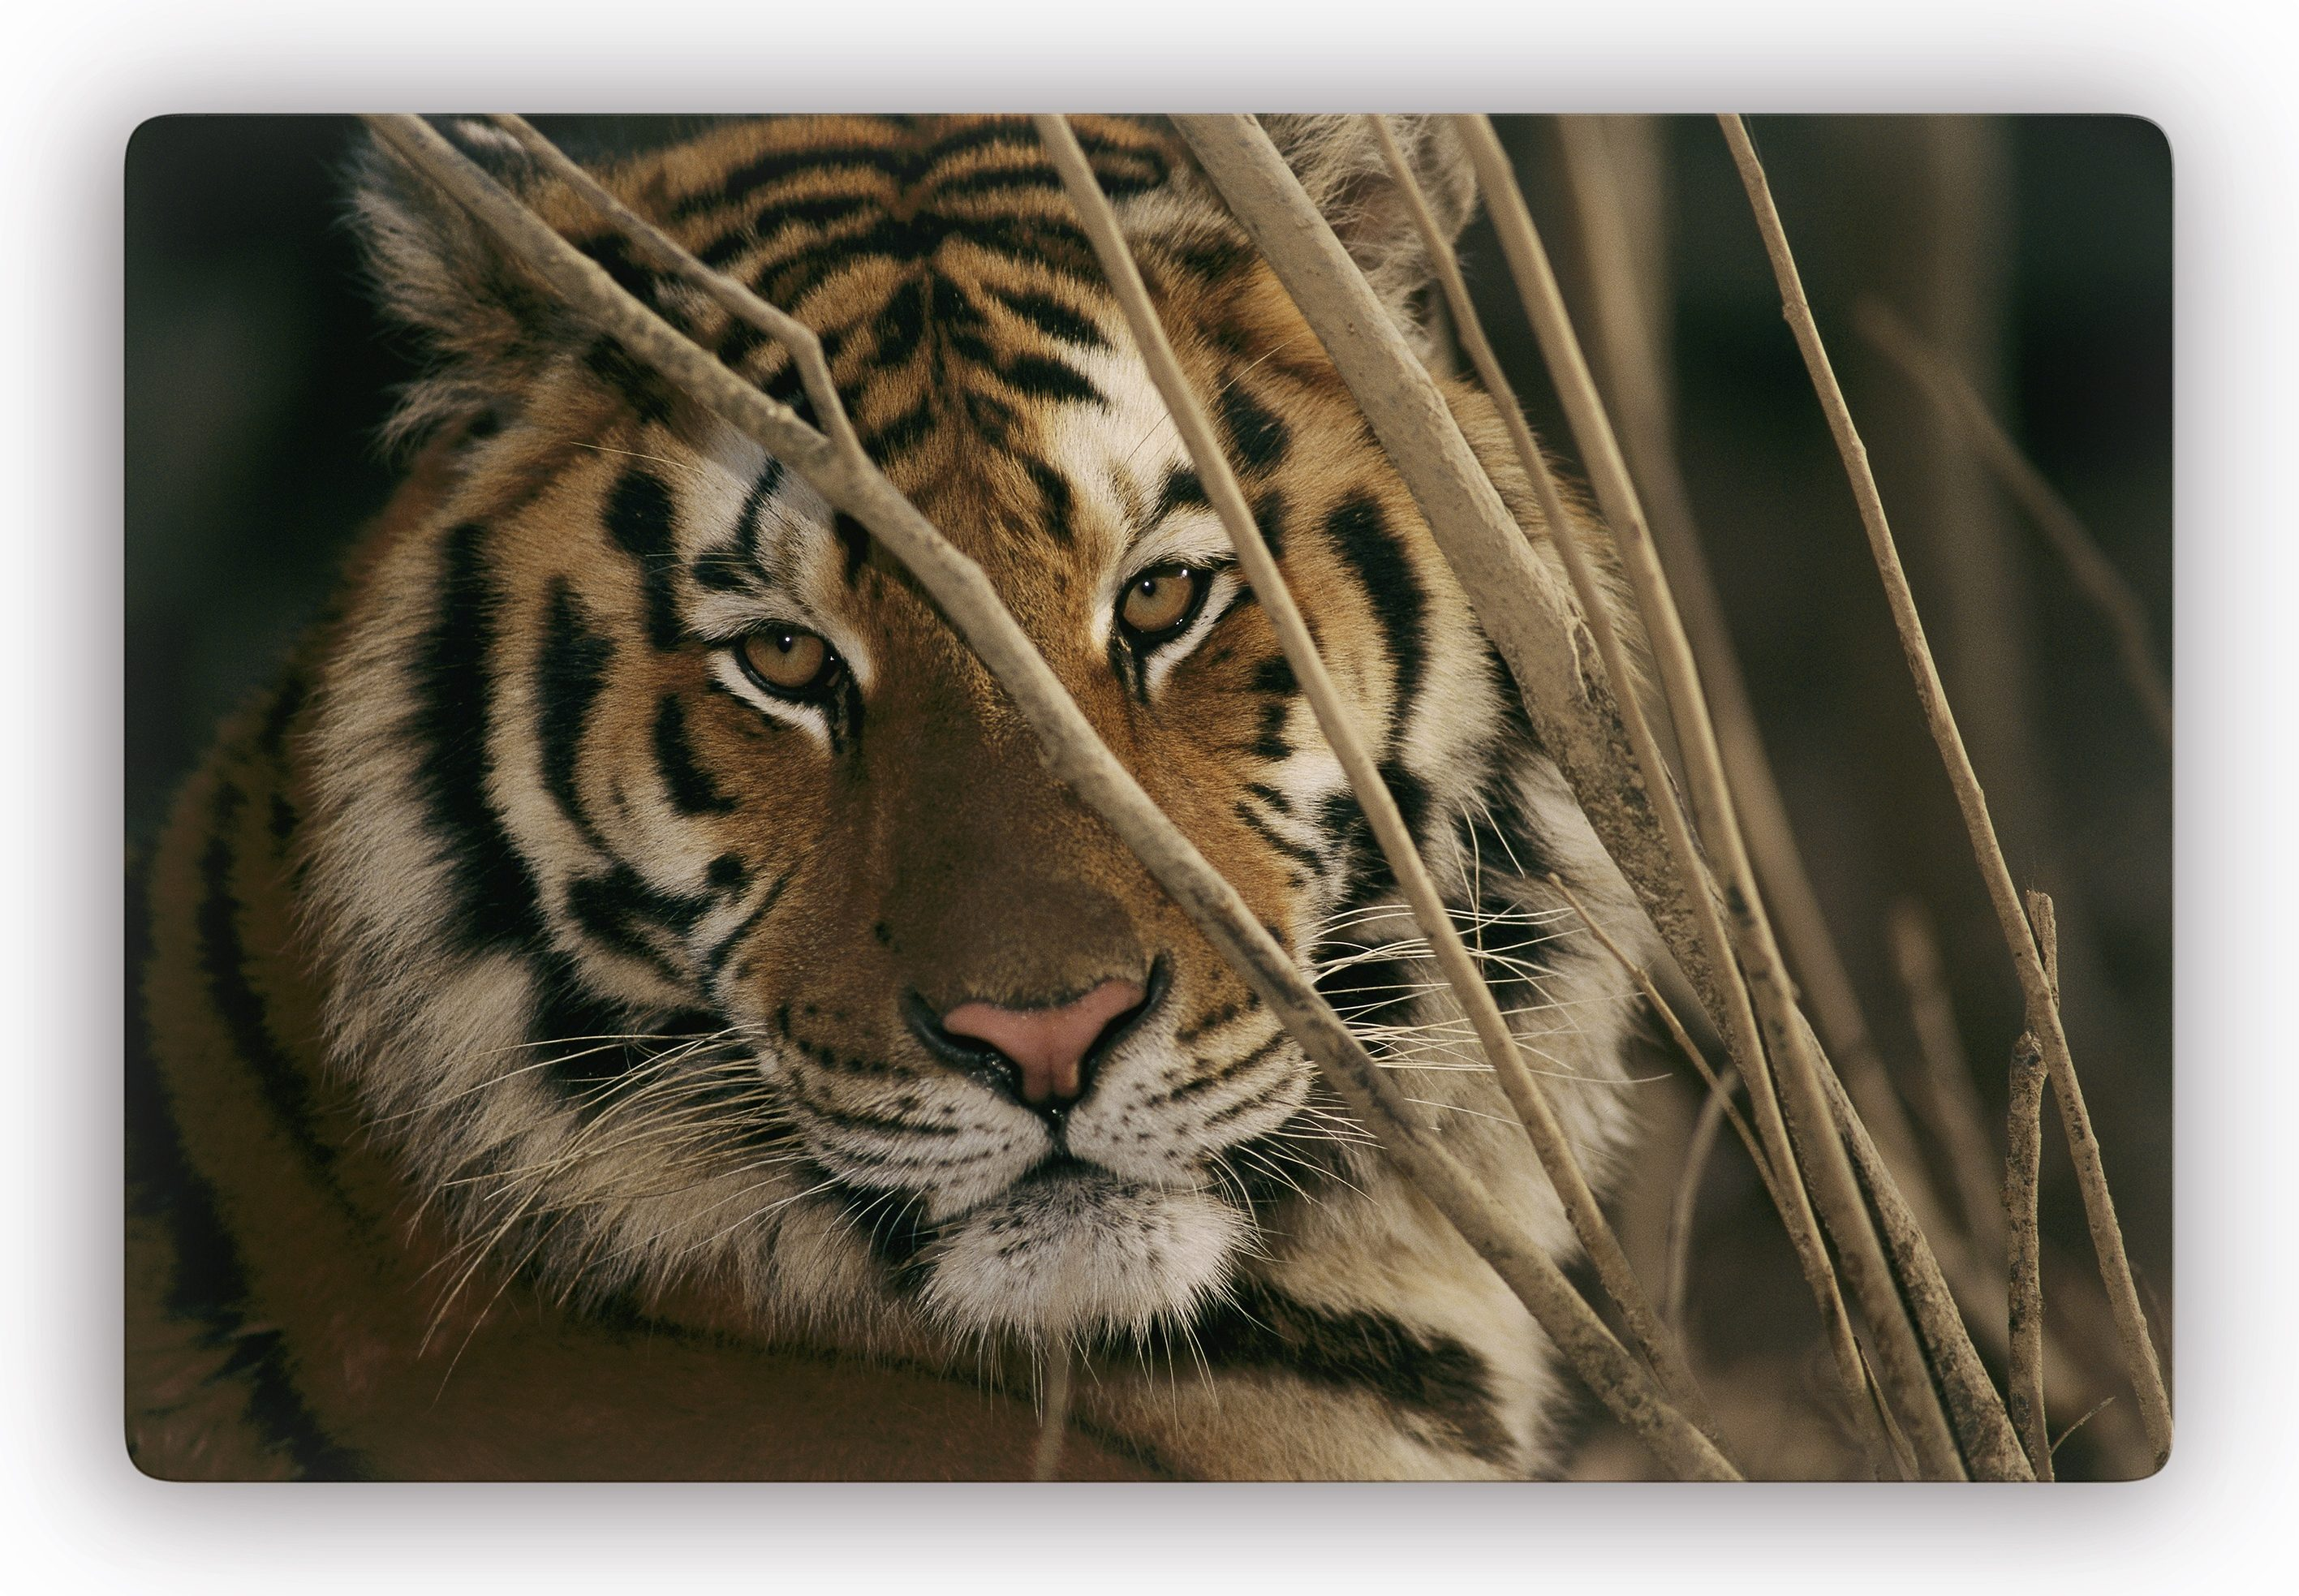 Glasbild, Home affaire, »Tiger«, 60/40 cm